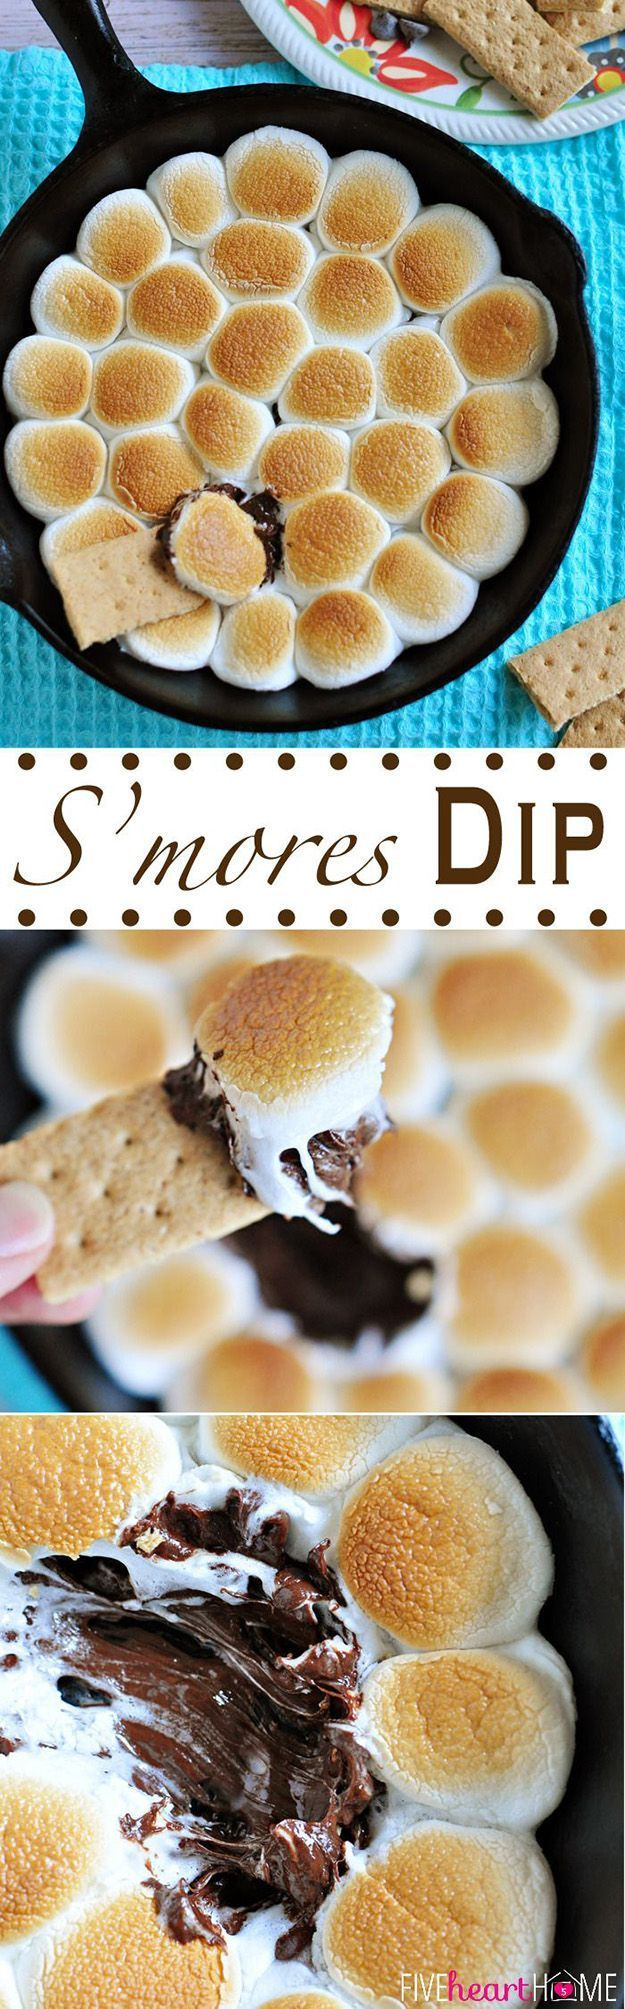 21 Labor Day Party Ideas - Easy DIYs and Recipes for Fun Filled Parties #labordaydesserts